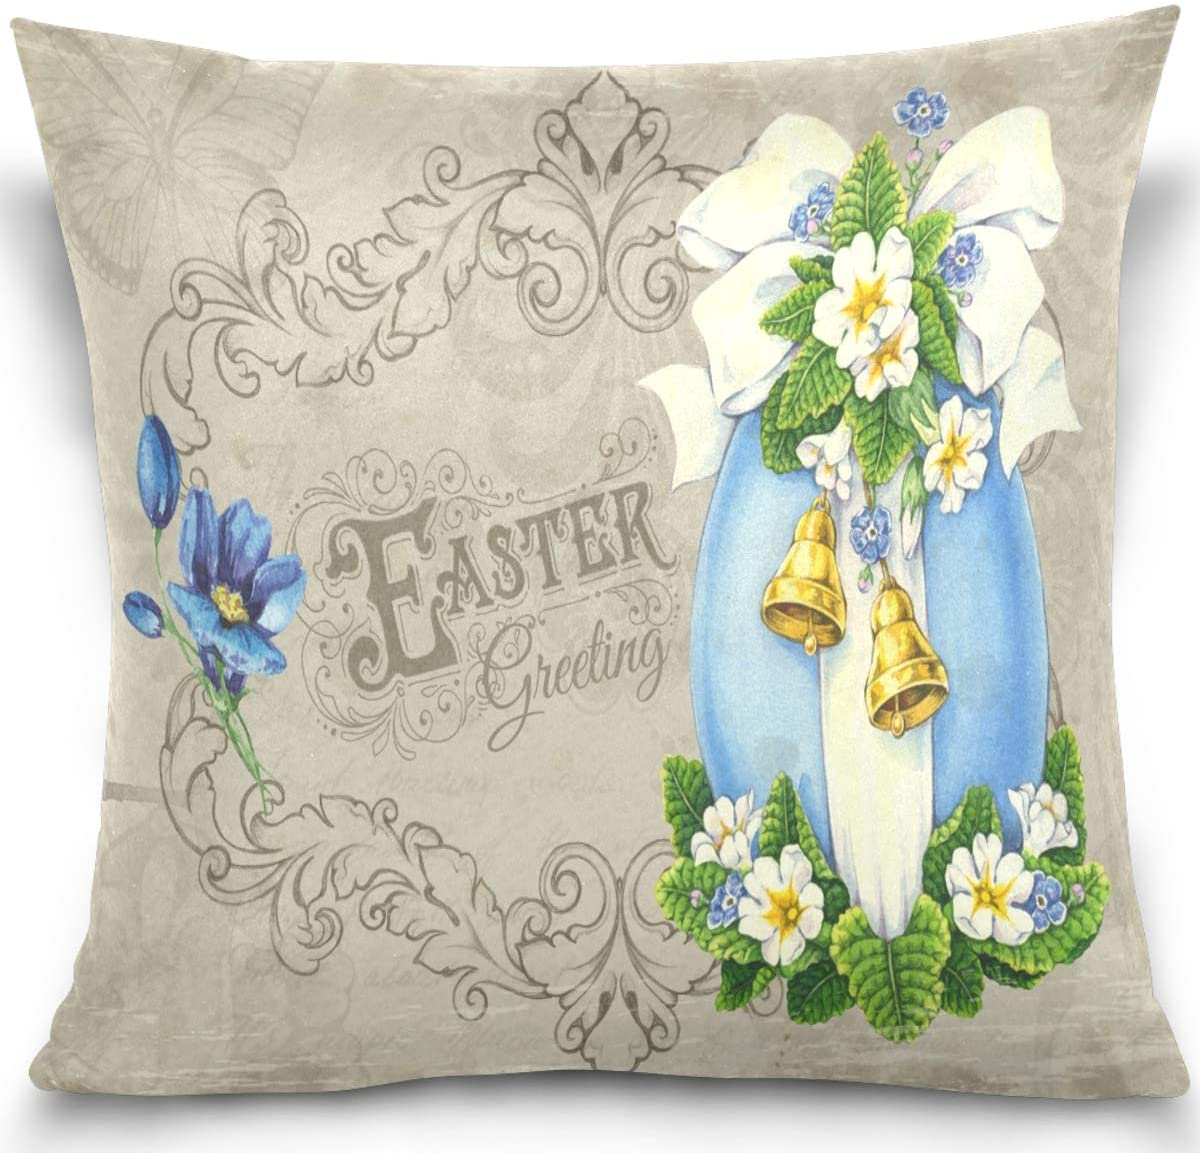 Olinyou Vintage Easter Egg Flowers Throw Pillow Cases Decorative Square Pillowcase Cushion Cover 16 x 16 Inch